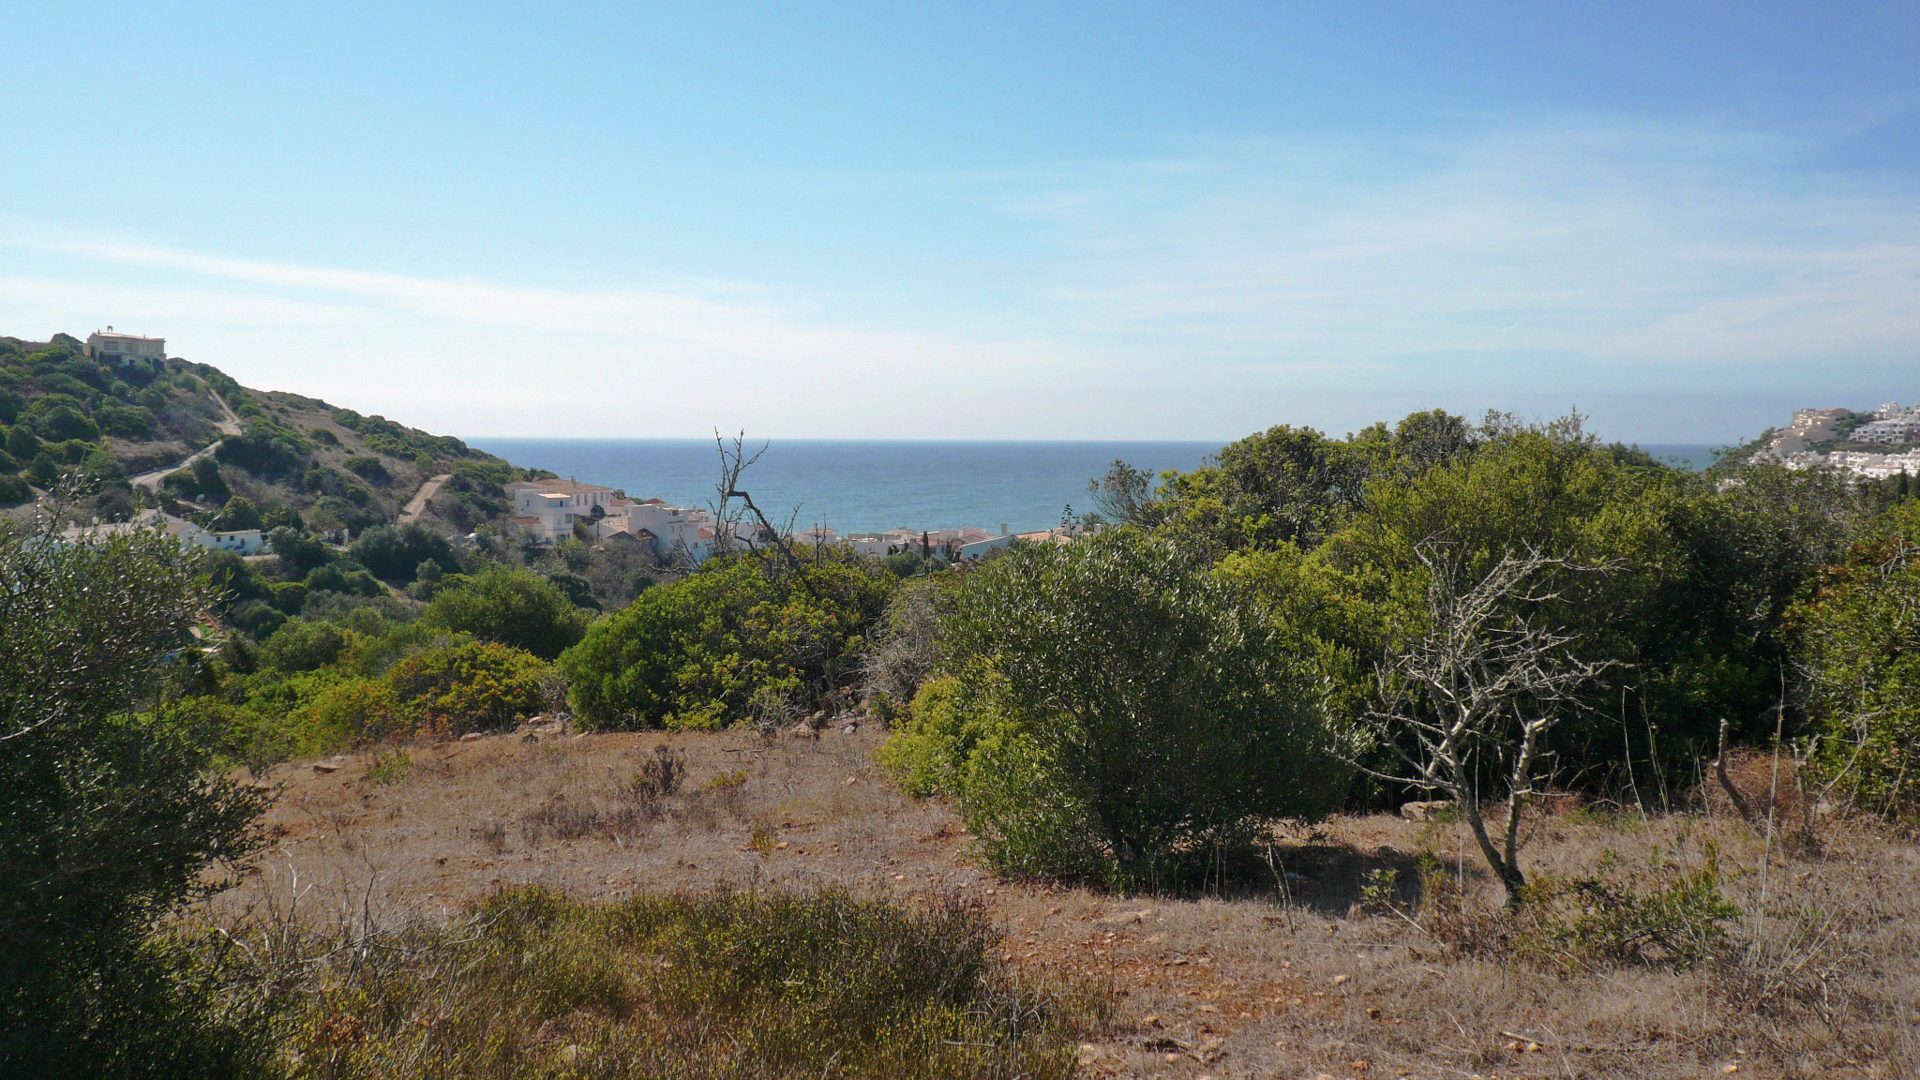 Elevated plot of 2.240m²  in Salema - West Algarve | S859 Unique opportunity to purchase this generous plot of 2.240m² set in an elevated hillside position in Salema. This position provides spectacular views over the countryside towards Salema and the Atlantic Ocean.